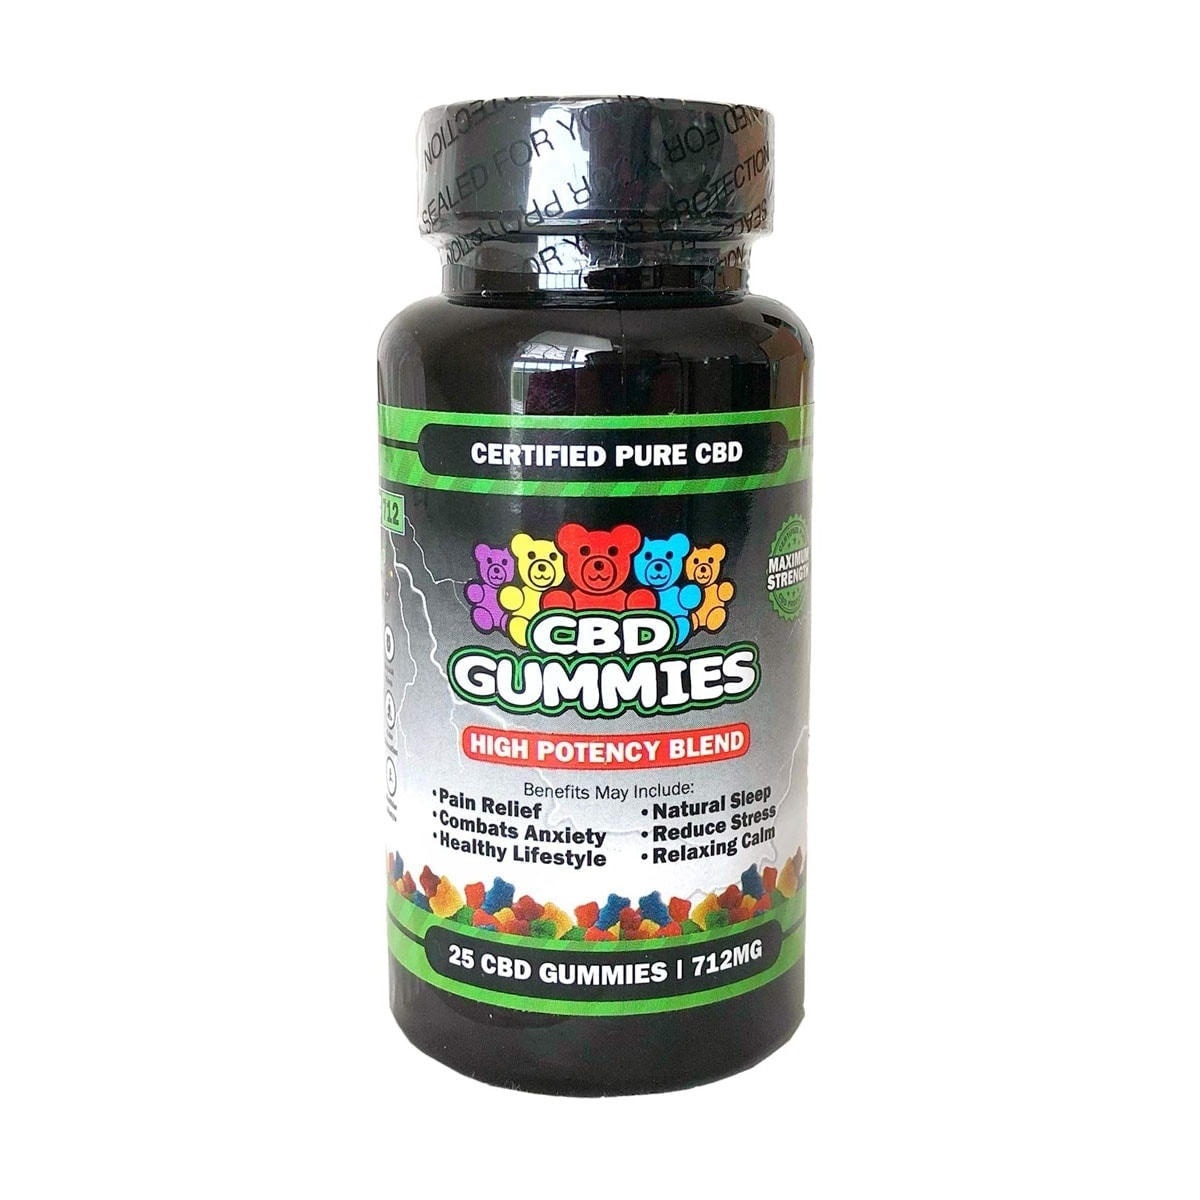 gummies-bottle-25countNEW-Front